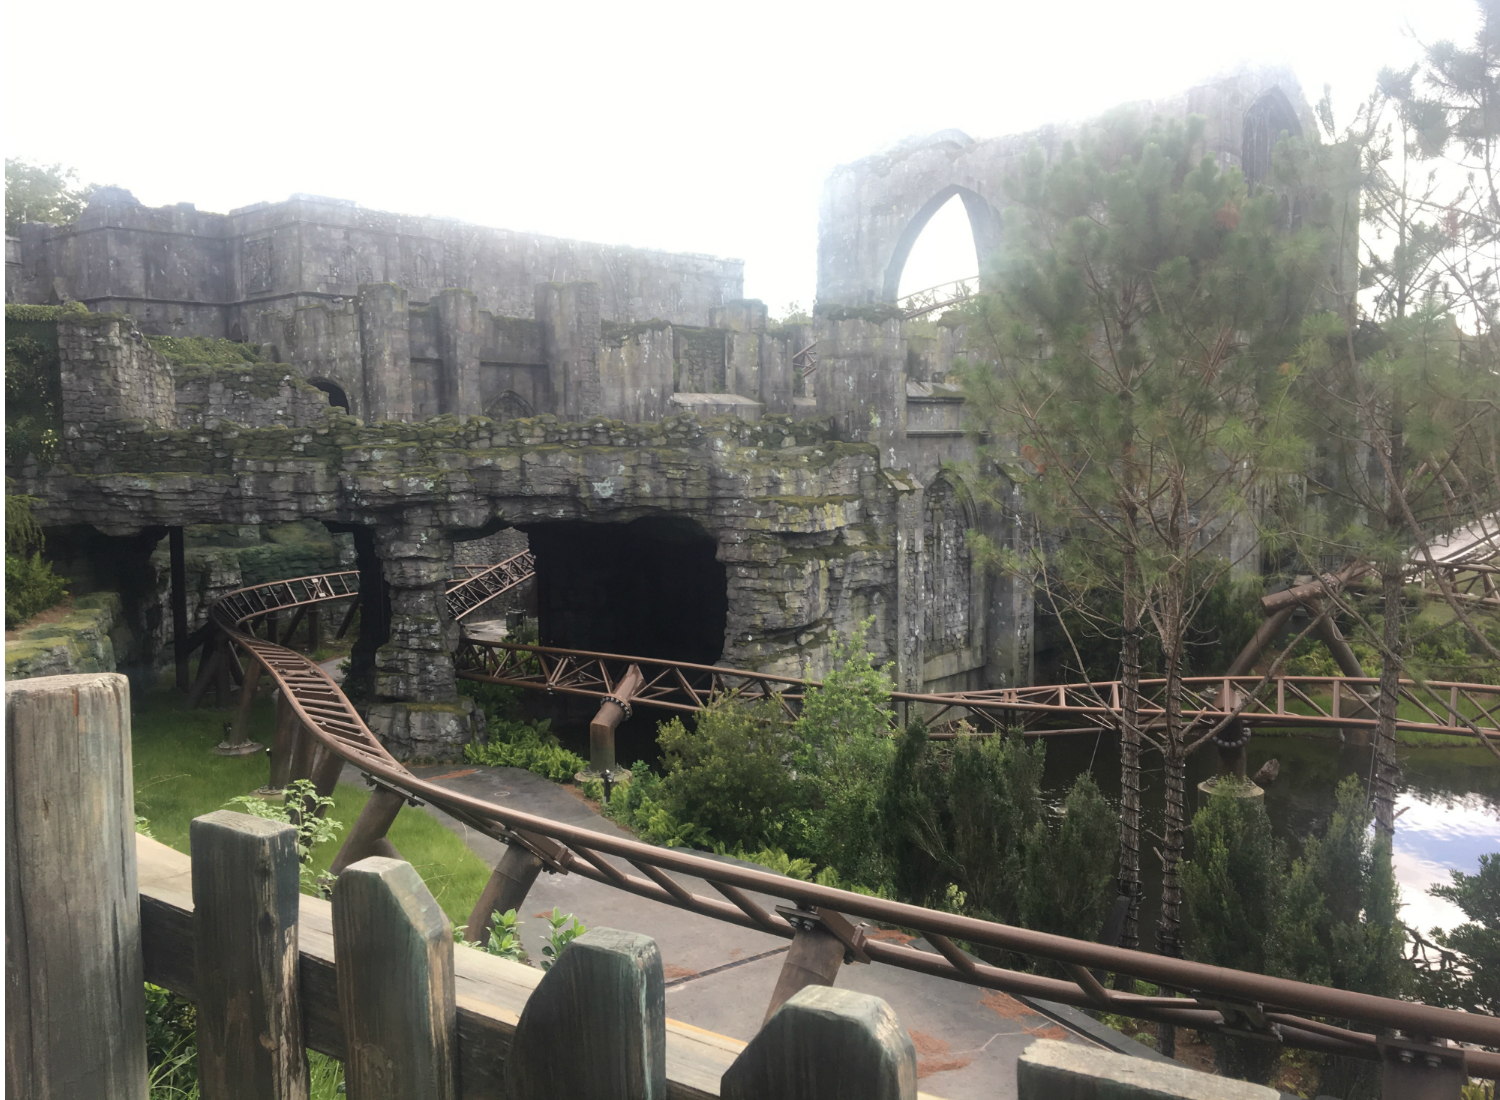 Hagrid's Magical Creature Motorbike Adventure has lots of magical twists and turns along the tracks.